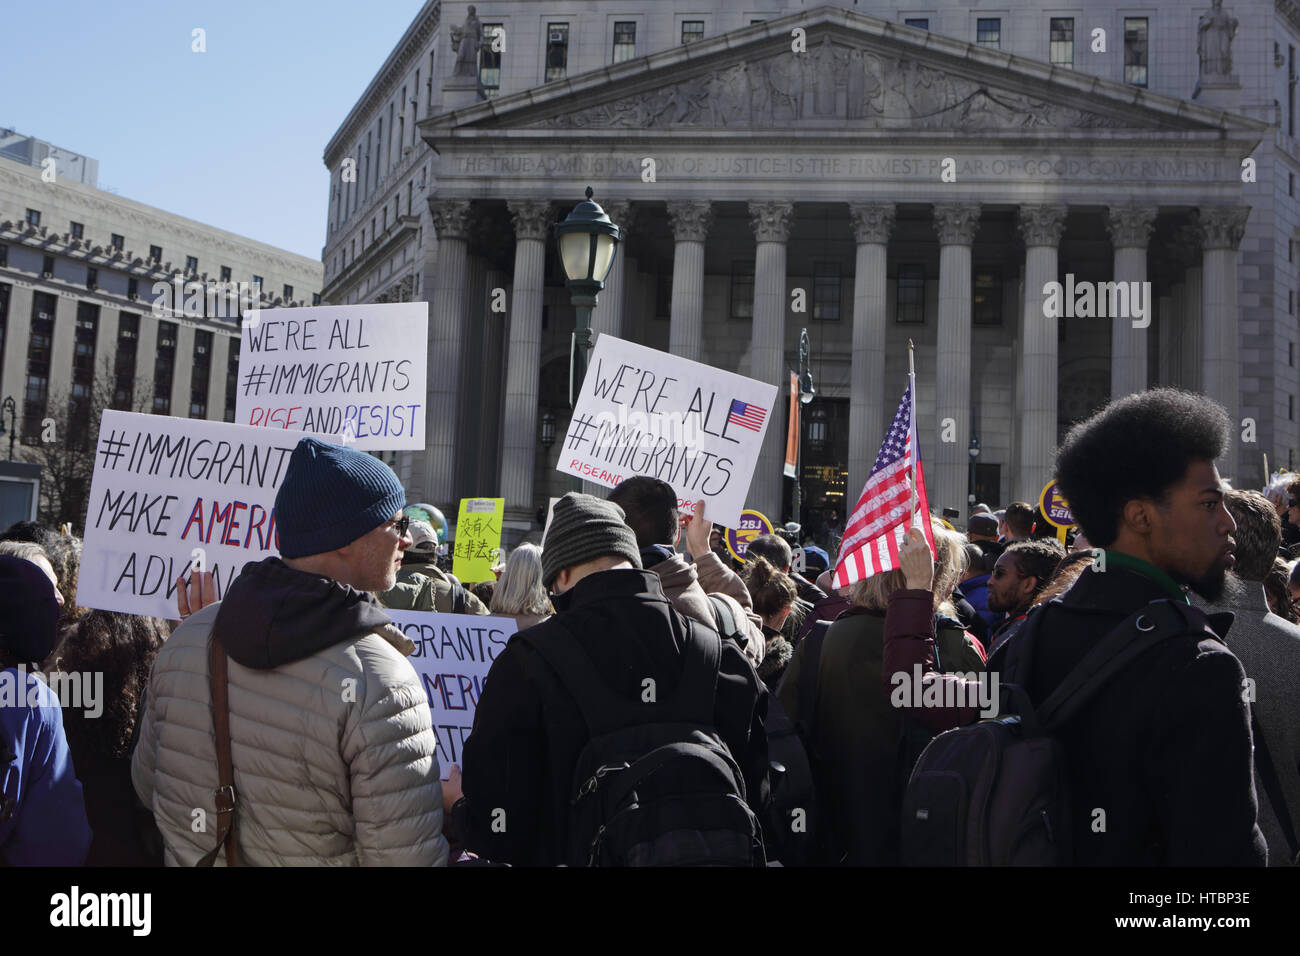 New York, NY, USA - March 9, 2017: A group of about 100 people rally in Foley Square, outside a courthouse in Manhattan, - Stock Image